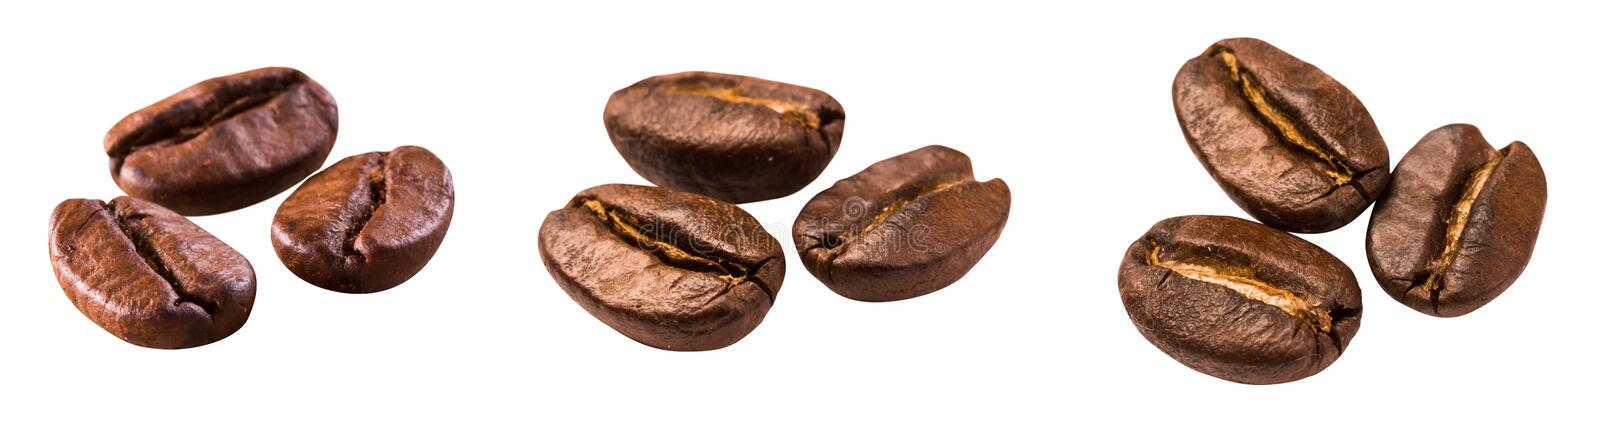 Roasted brown coffee beans isolated stock image